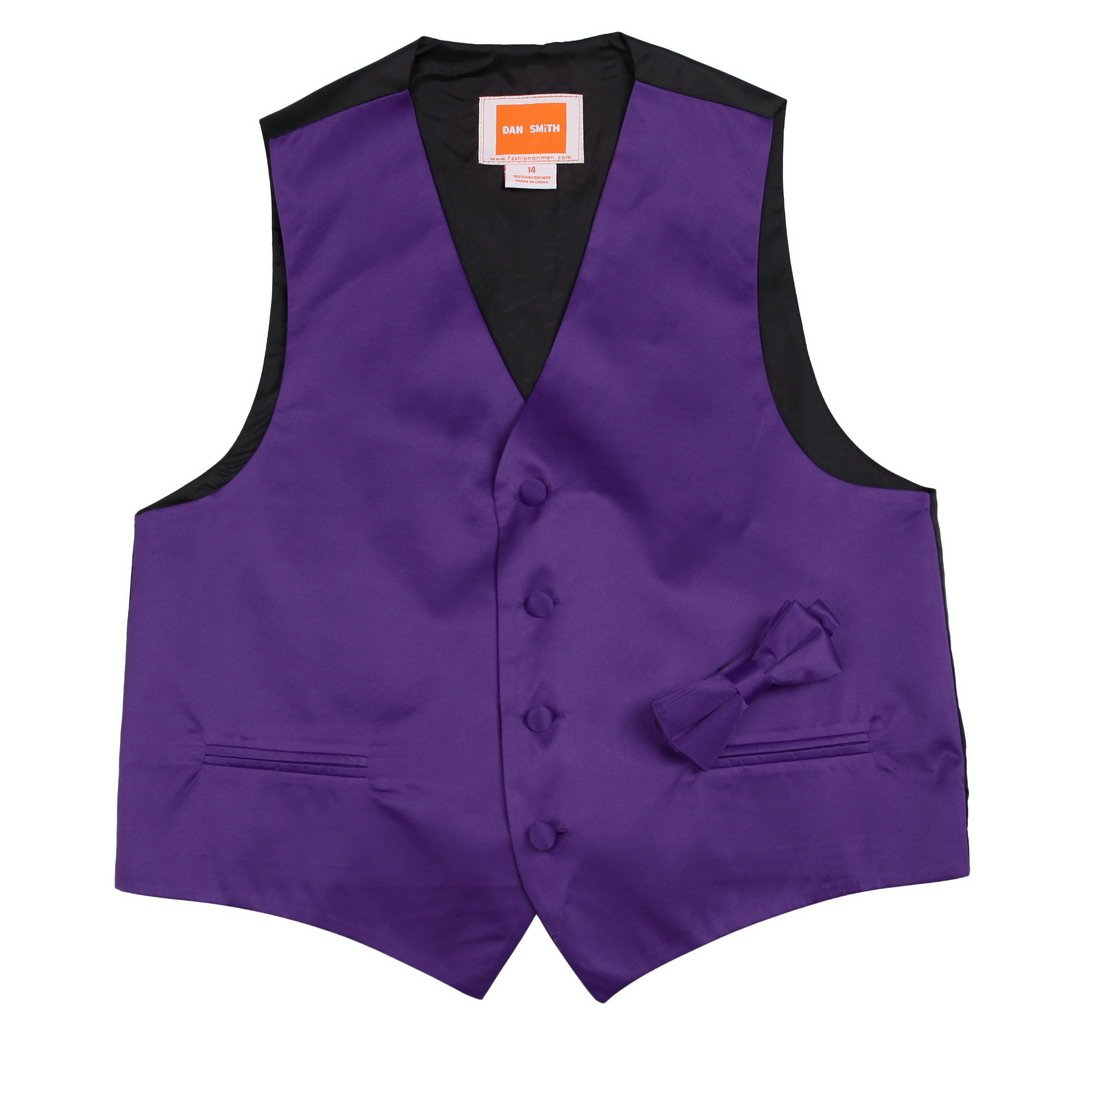 Dan Smith DGEE0017-10 Dark Brown Children Solid Vest Microfiber Gift For Marriage Kids Vest with Matching Bow Tie for Age 10